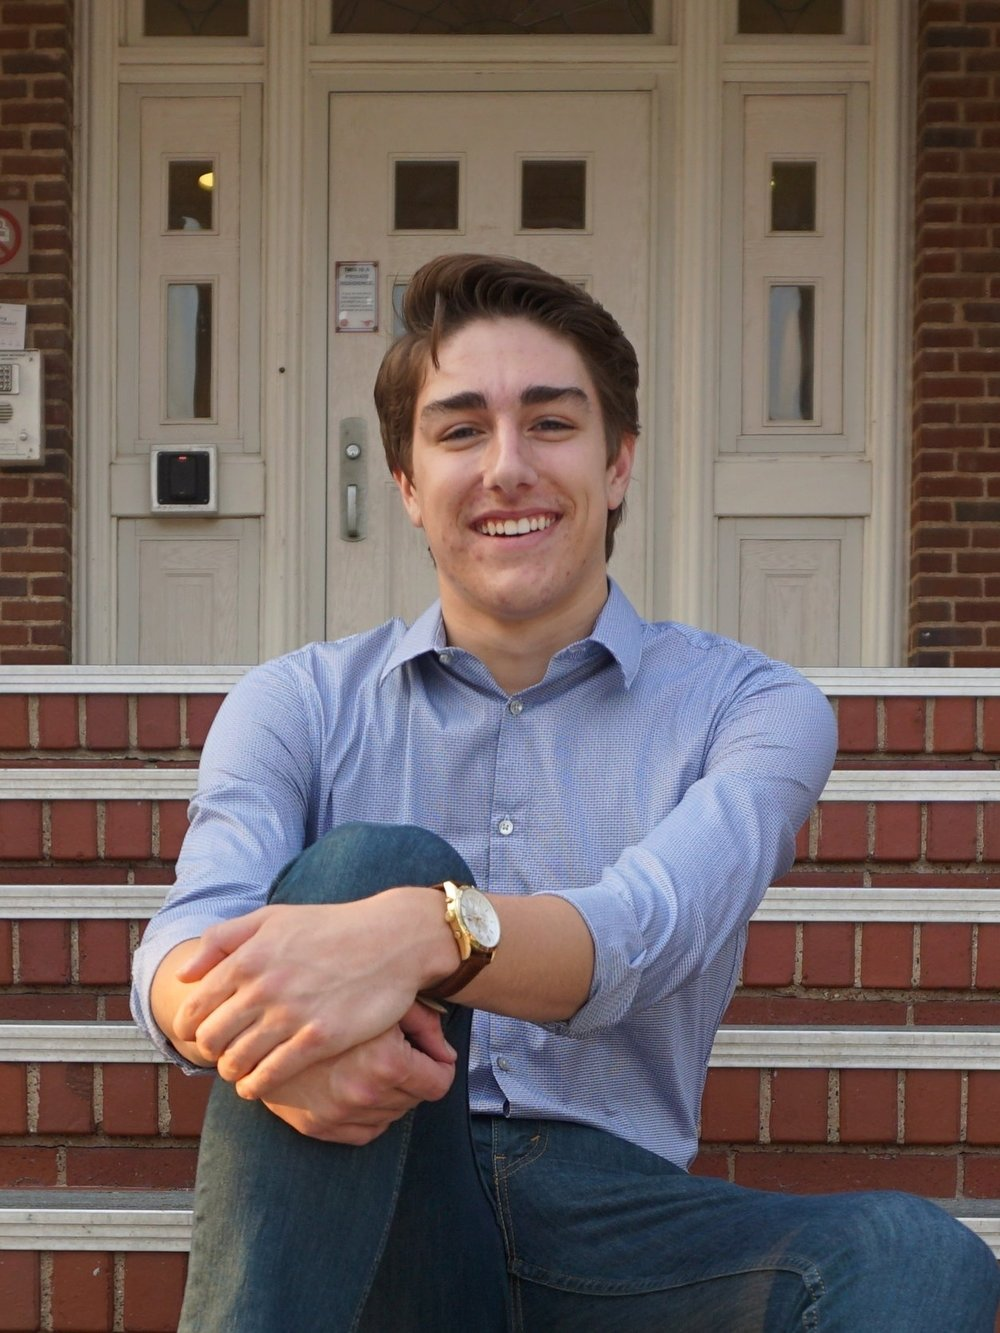 Noah Wells - Commons Council PresidentNoah is very proud to be your Commons Council President for the 2017-2018 school year! He is a sophomore, double majoring in EMIS and Finance, who is also involved with Southern Gentlemen (SMU's male a cappella group) and Theta Tau Fraternity (Engineering Fraternity). In his free time he enjoys participating in almost all intramural sports and discovering the best places to eat in Dallas.He served as the VS President for the second semester of last year, and liked the job so much that he decided to come back for a full year. He is dedicated to building a unique identity and strong sense of community within this commons, so that every resident can have a memorable and productive college experience!